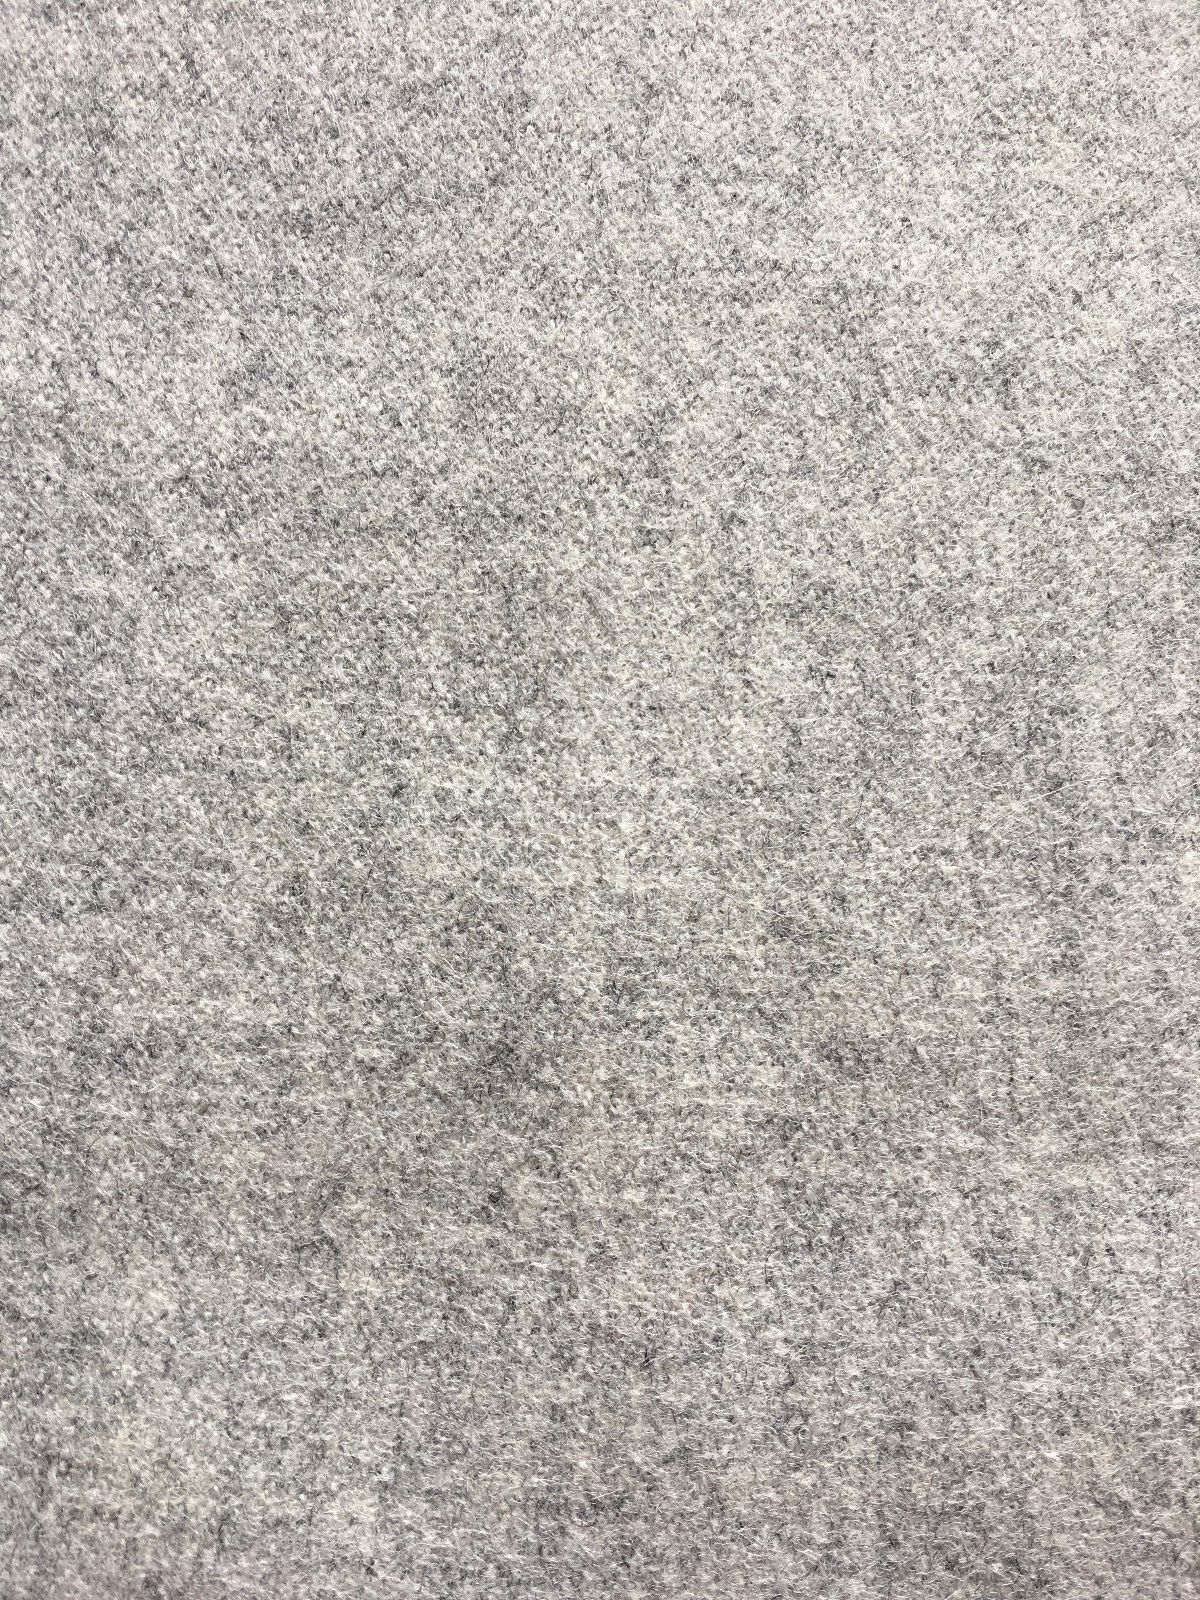 6.625 yds Woven Wool Upholstery Fabric Mid Century Gray Melange GT